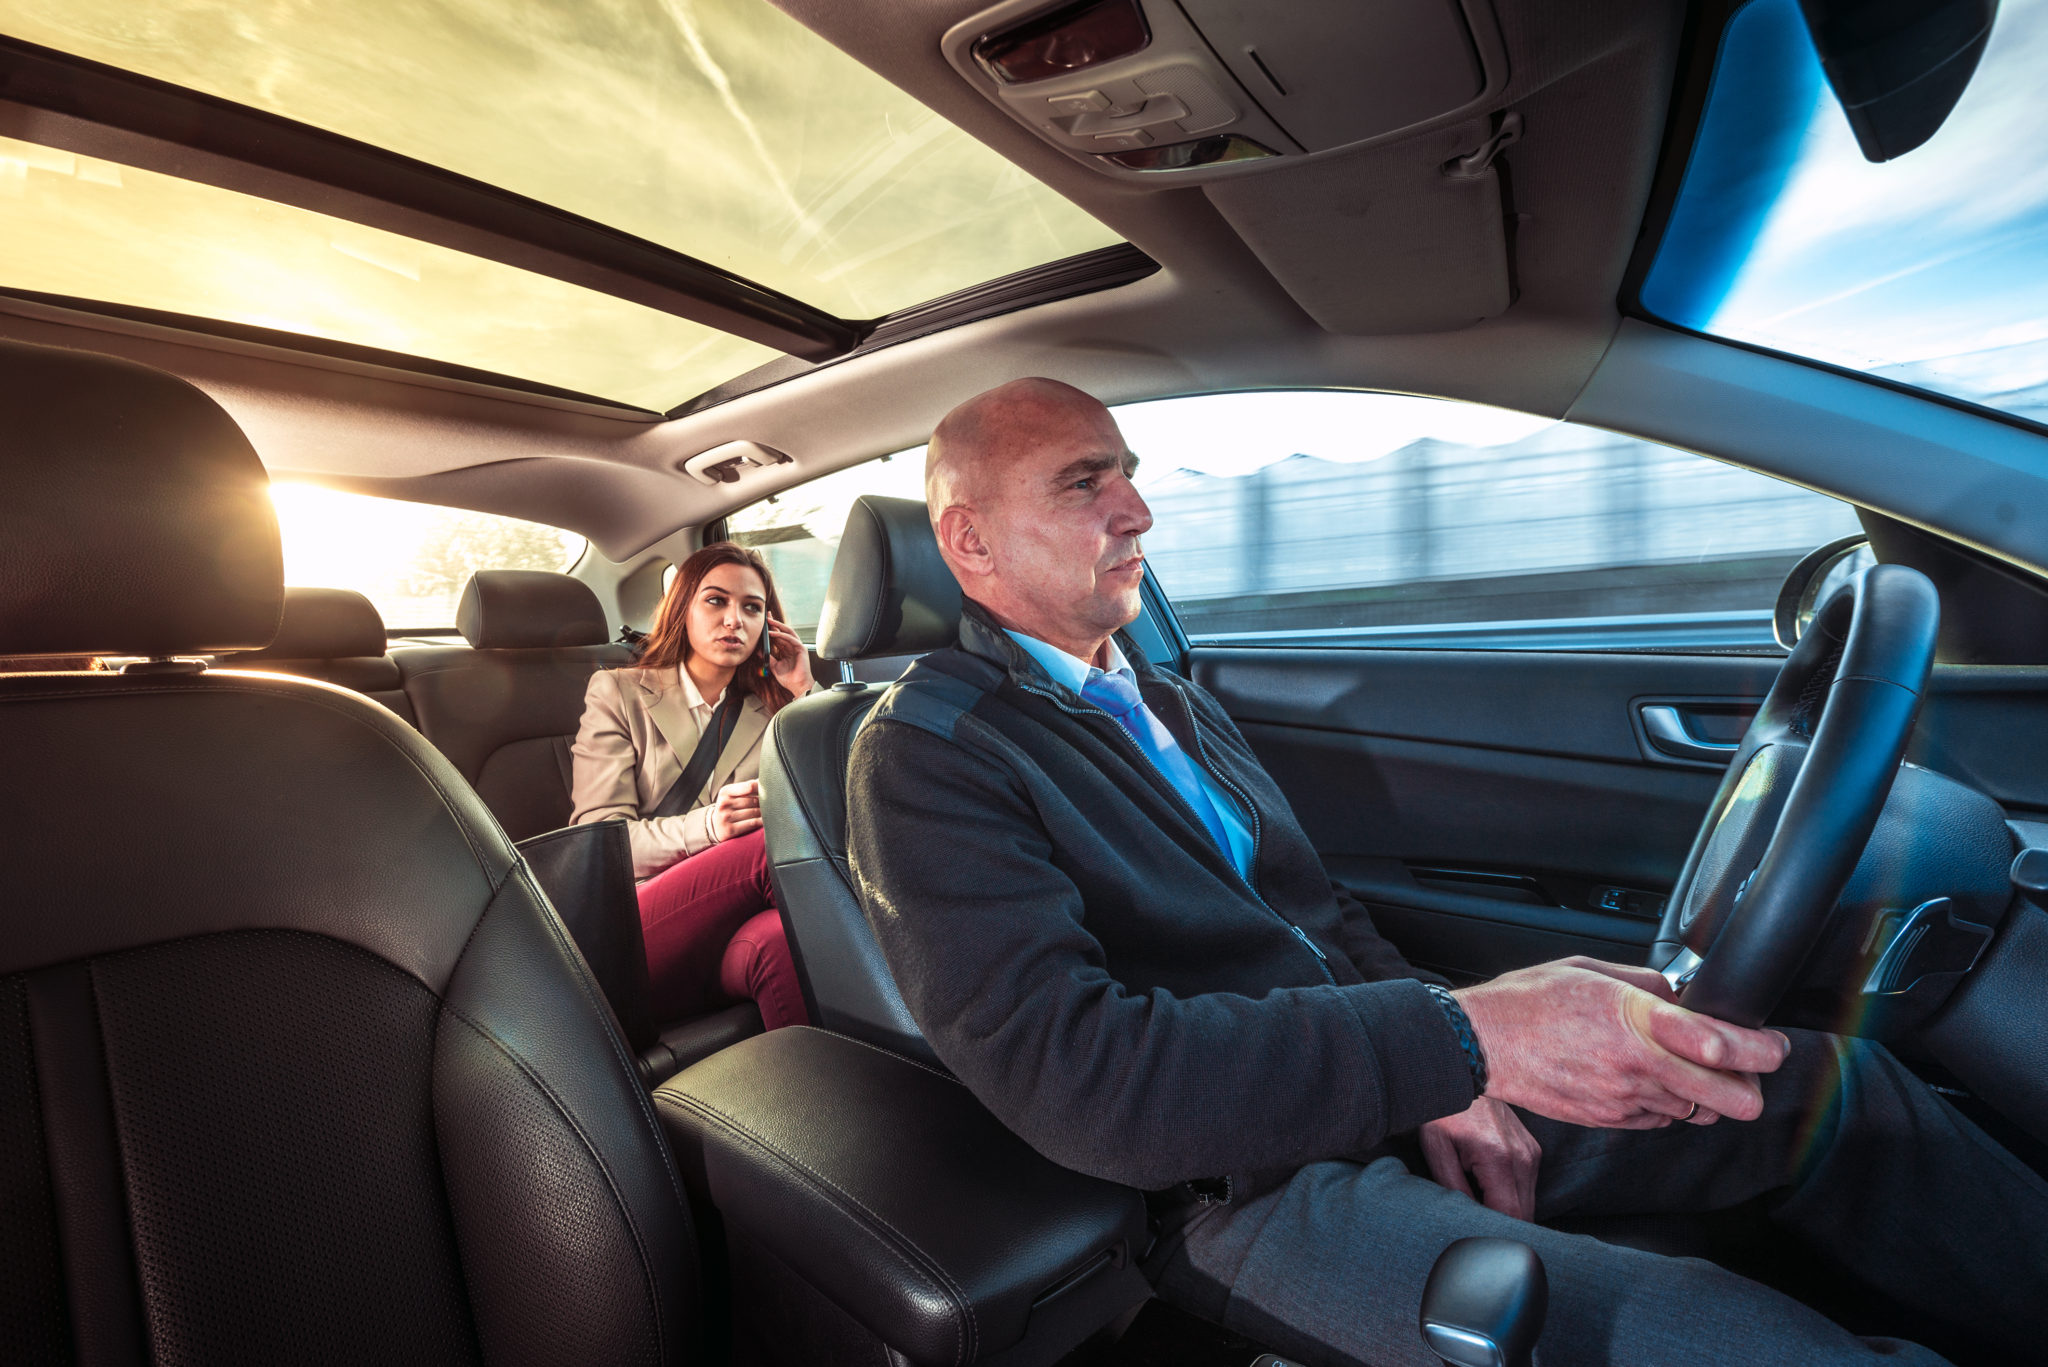 Distracted Driving Awareness Month: Guaranteed Safety With A Professional Car Service